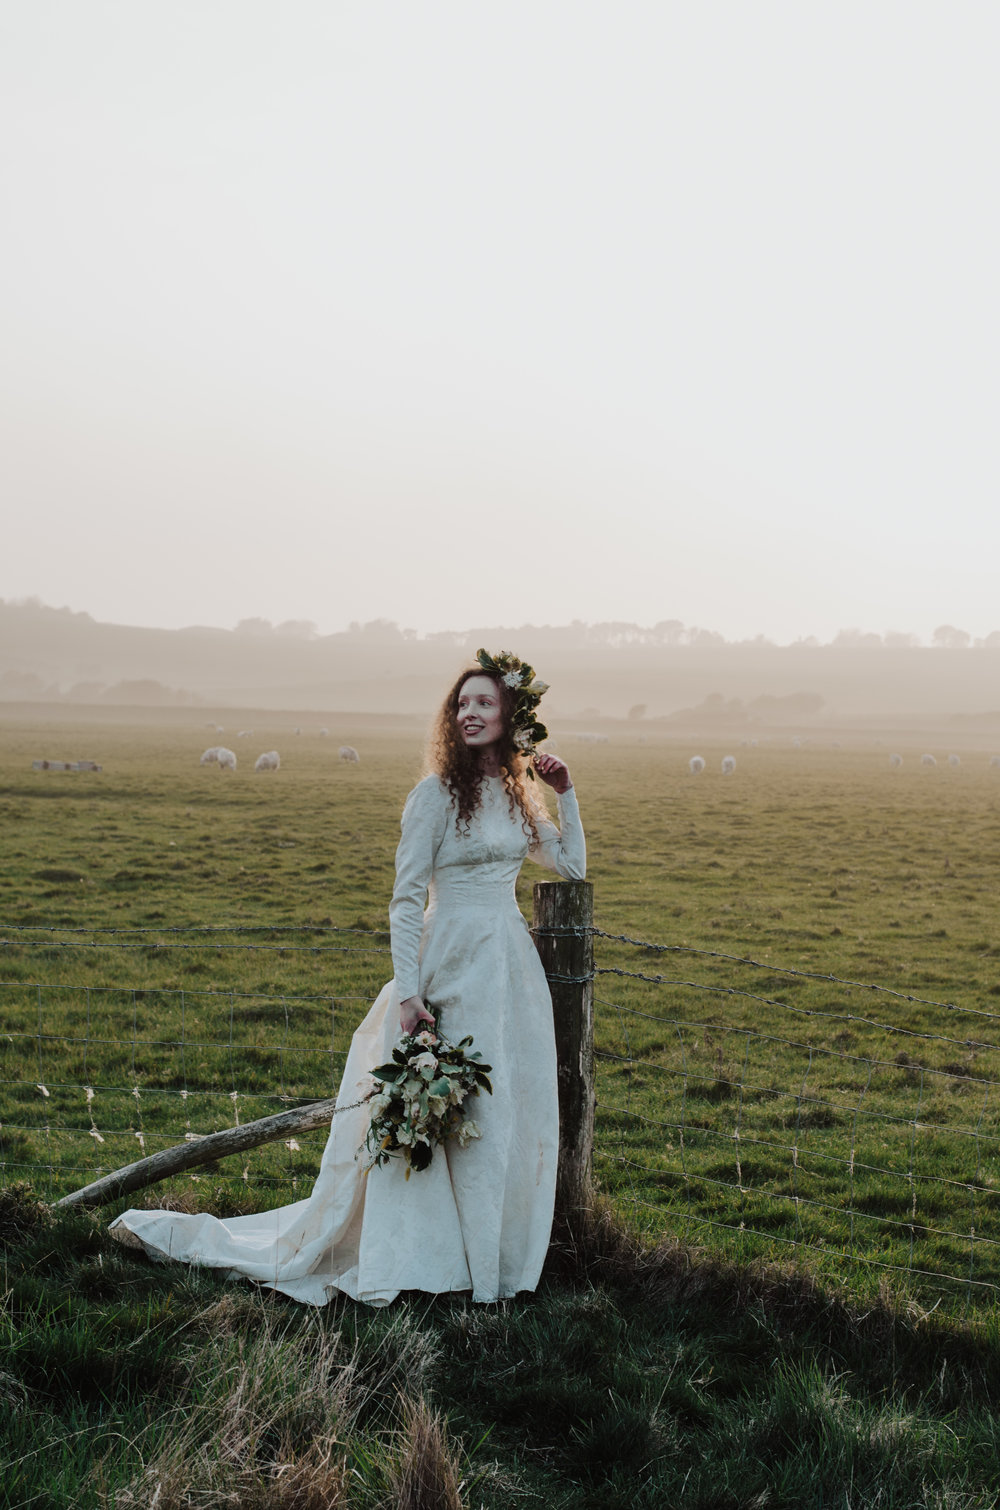 Bridal - Cuckmere Haven 2018 - Aiste Saulyte Photography-44.jpg